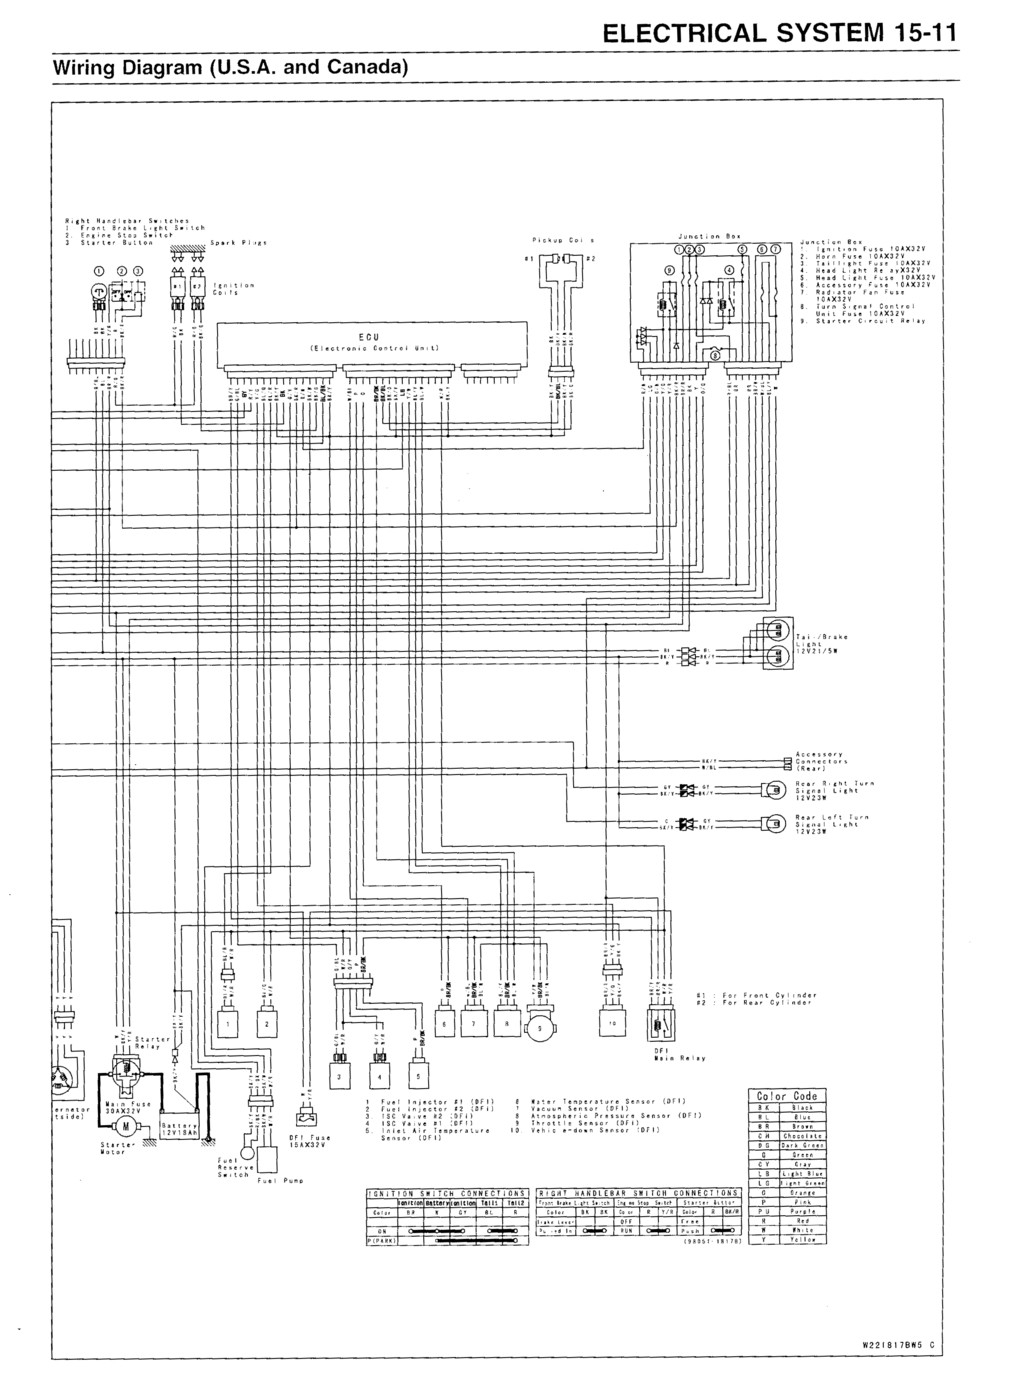 hight resolution of kawasaki vulcan ignition wiring diagram wiring diagram for you kawasaki kz1000 vulcan 800 ignition diagram